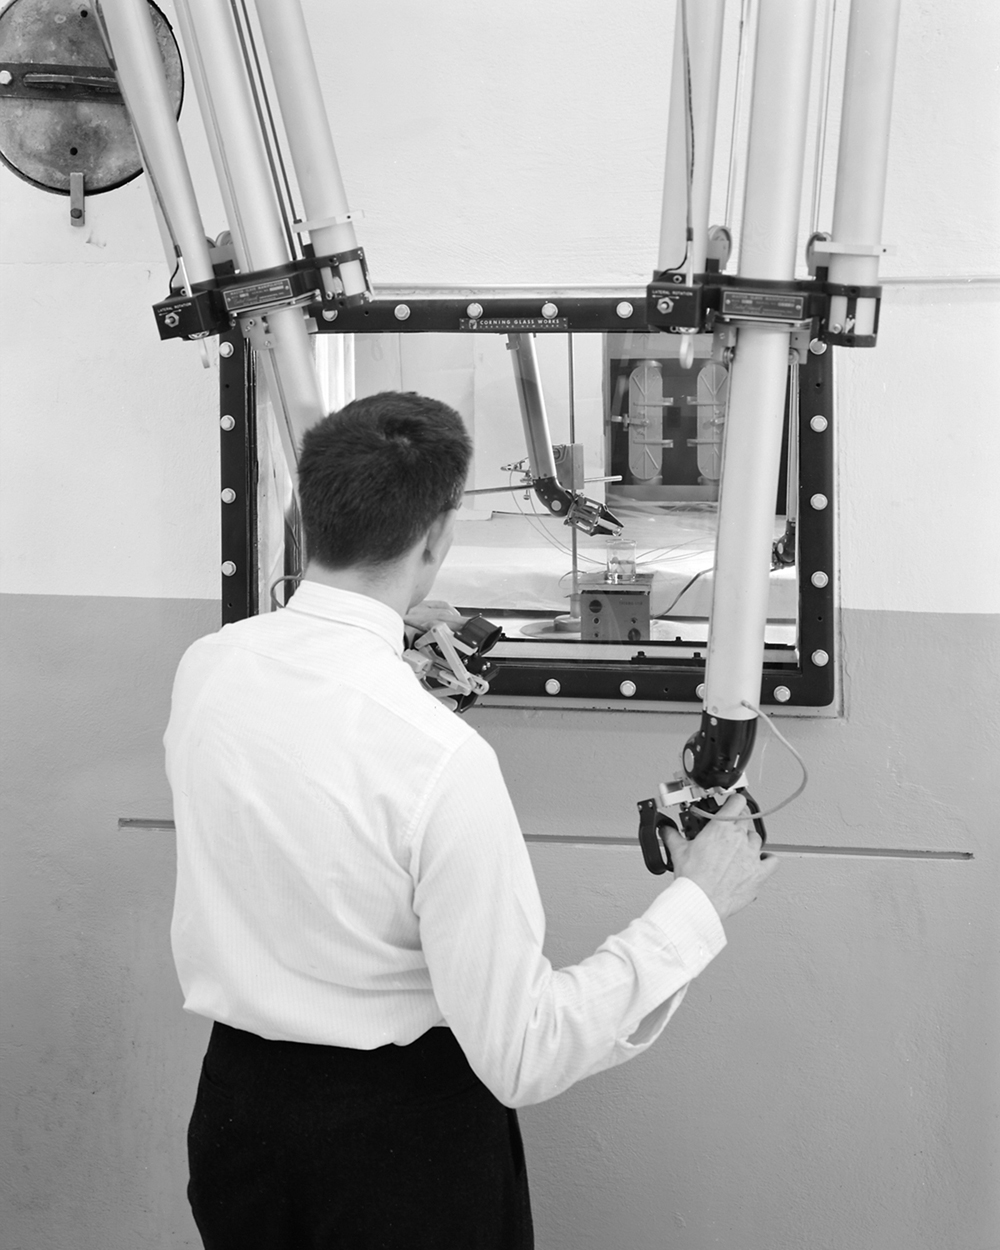 Space History Photo: Bob Oldrieve Using Manipulator Arms